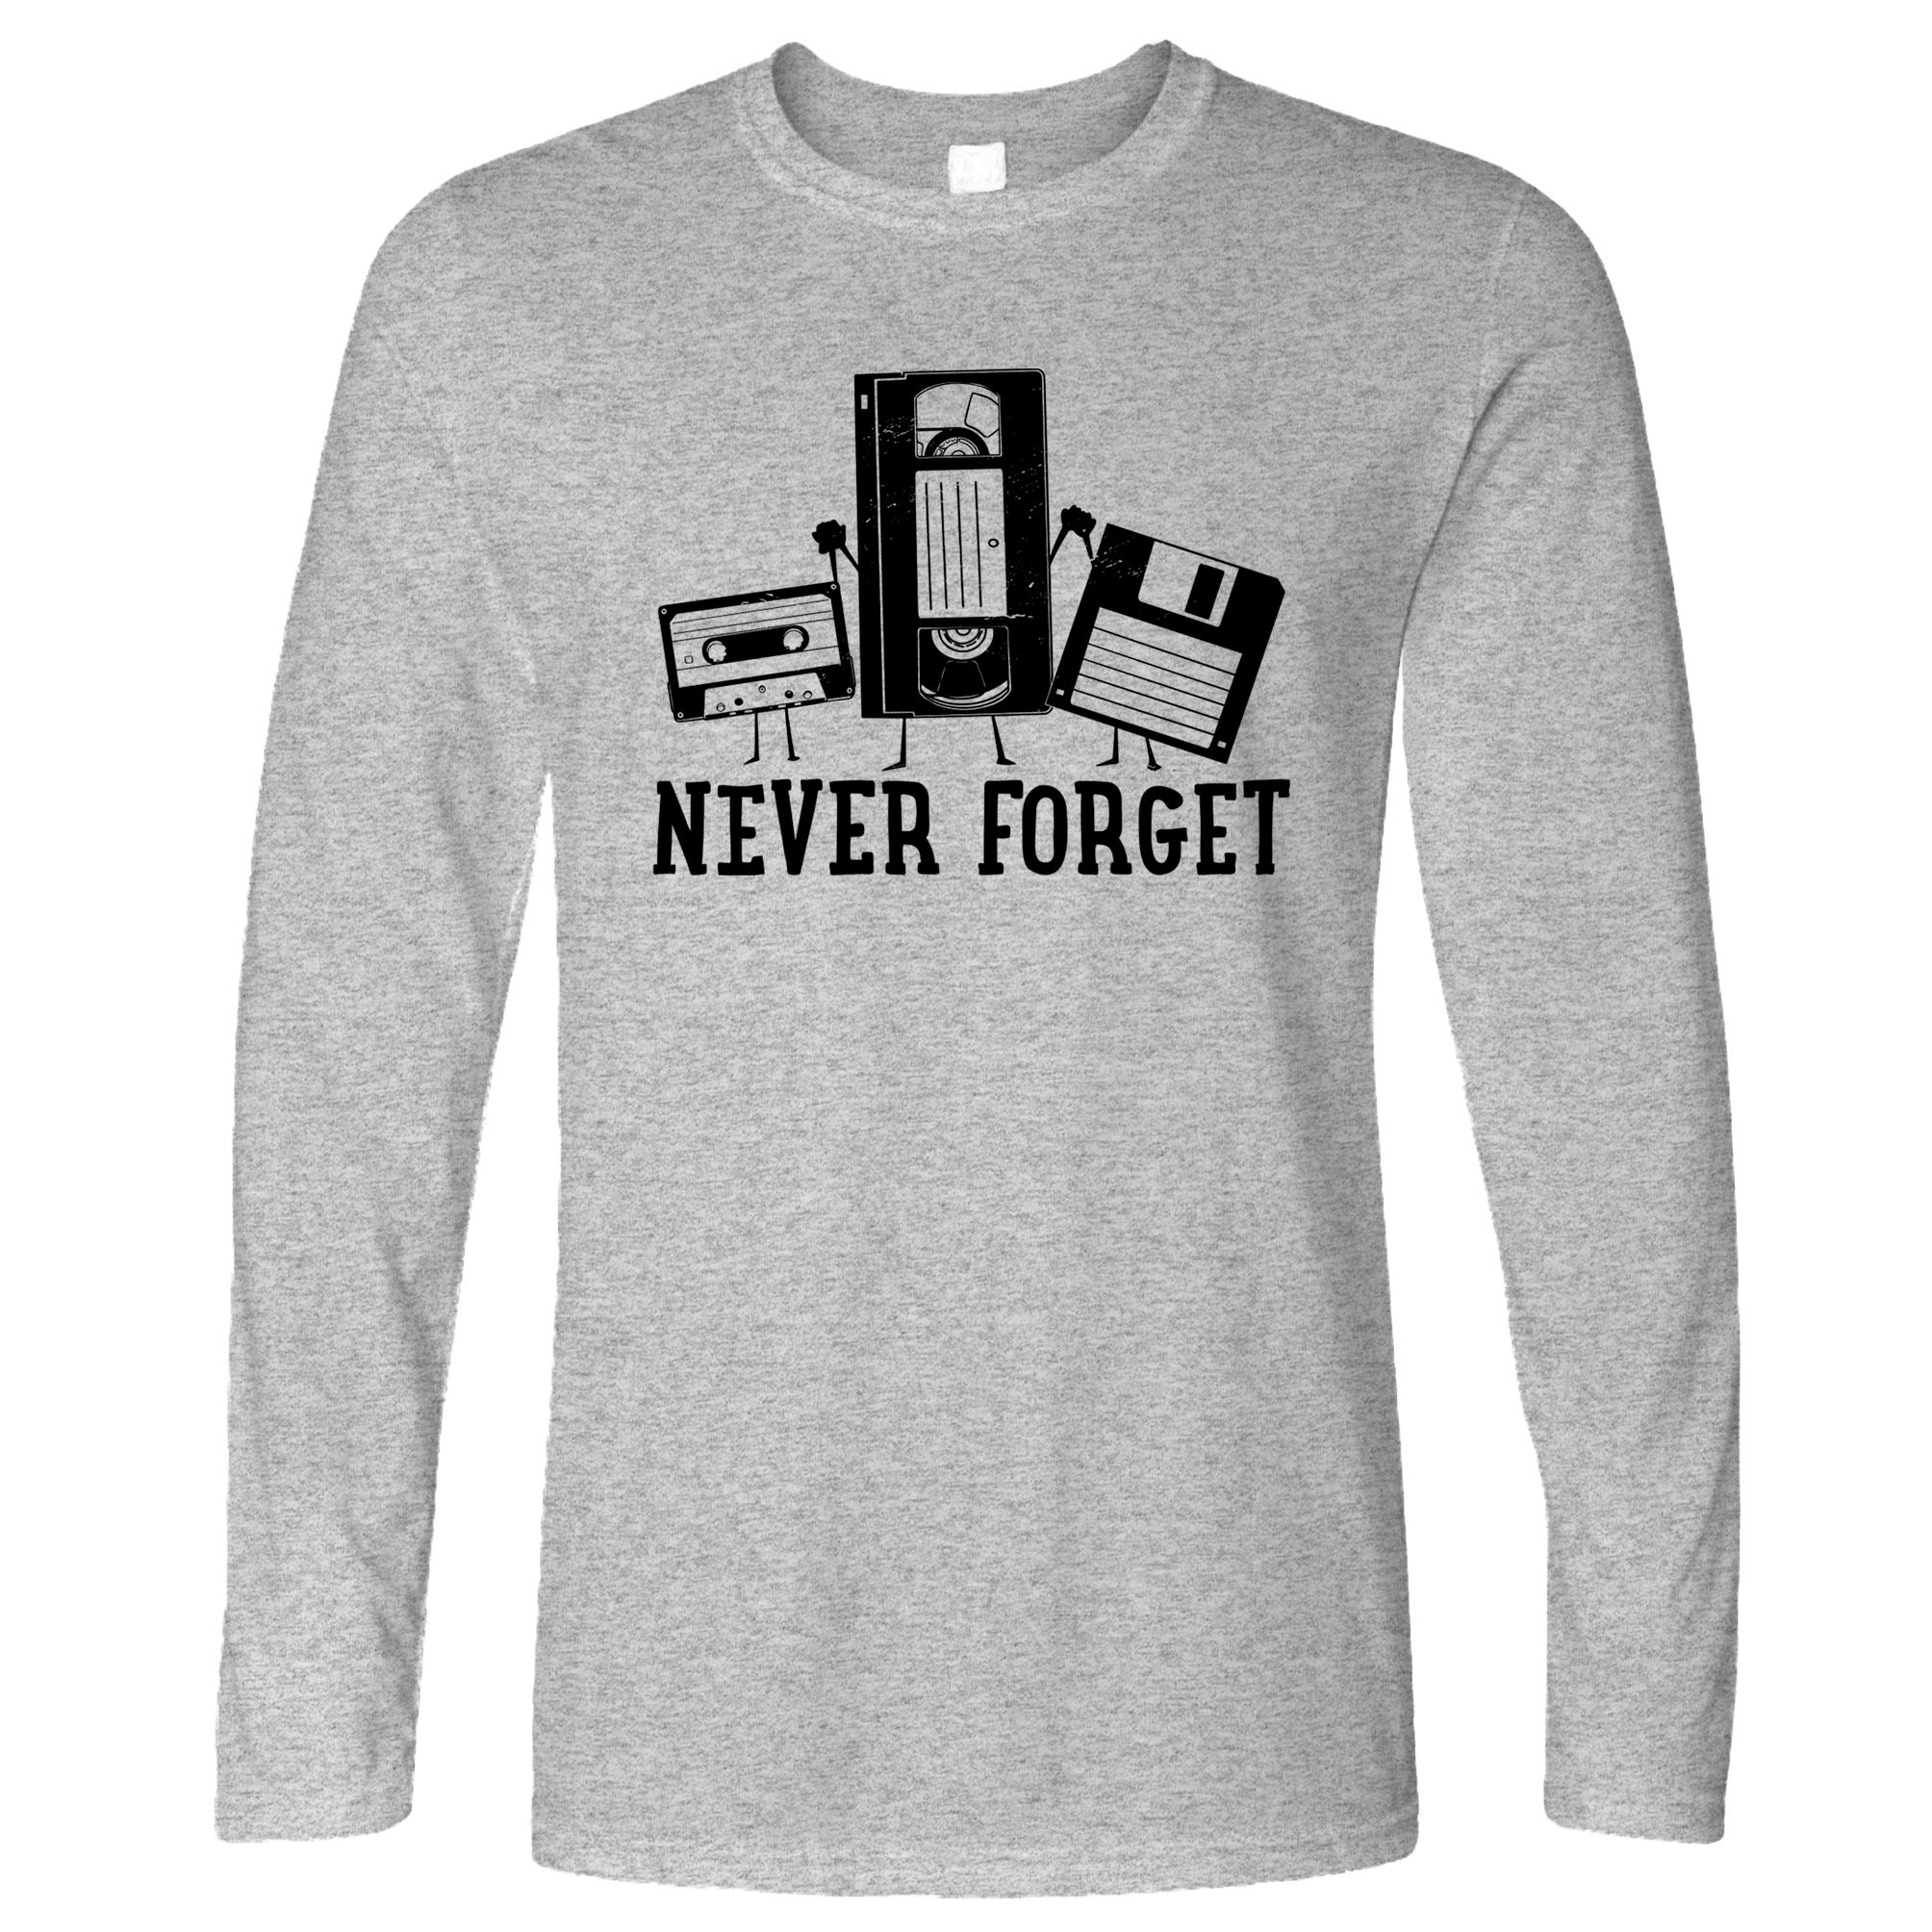 Retro Long Sleeve Never Forget VHS and Floppy Discs T-Shirt